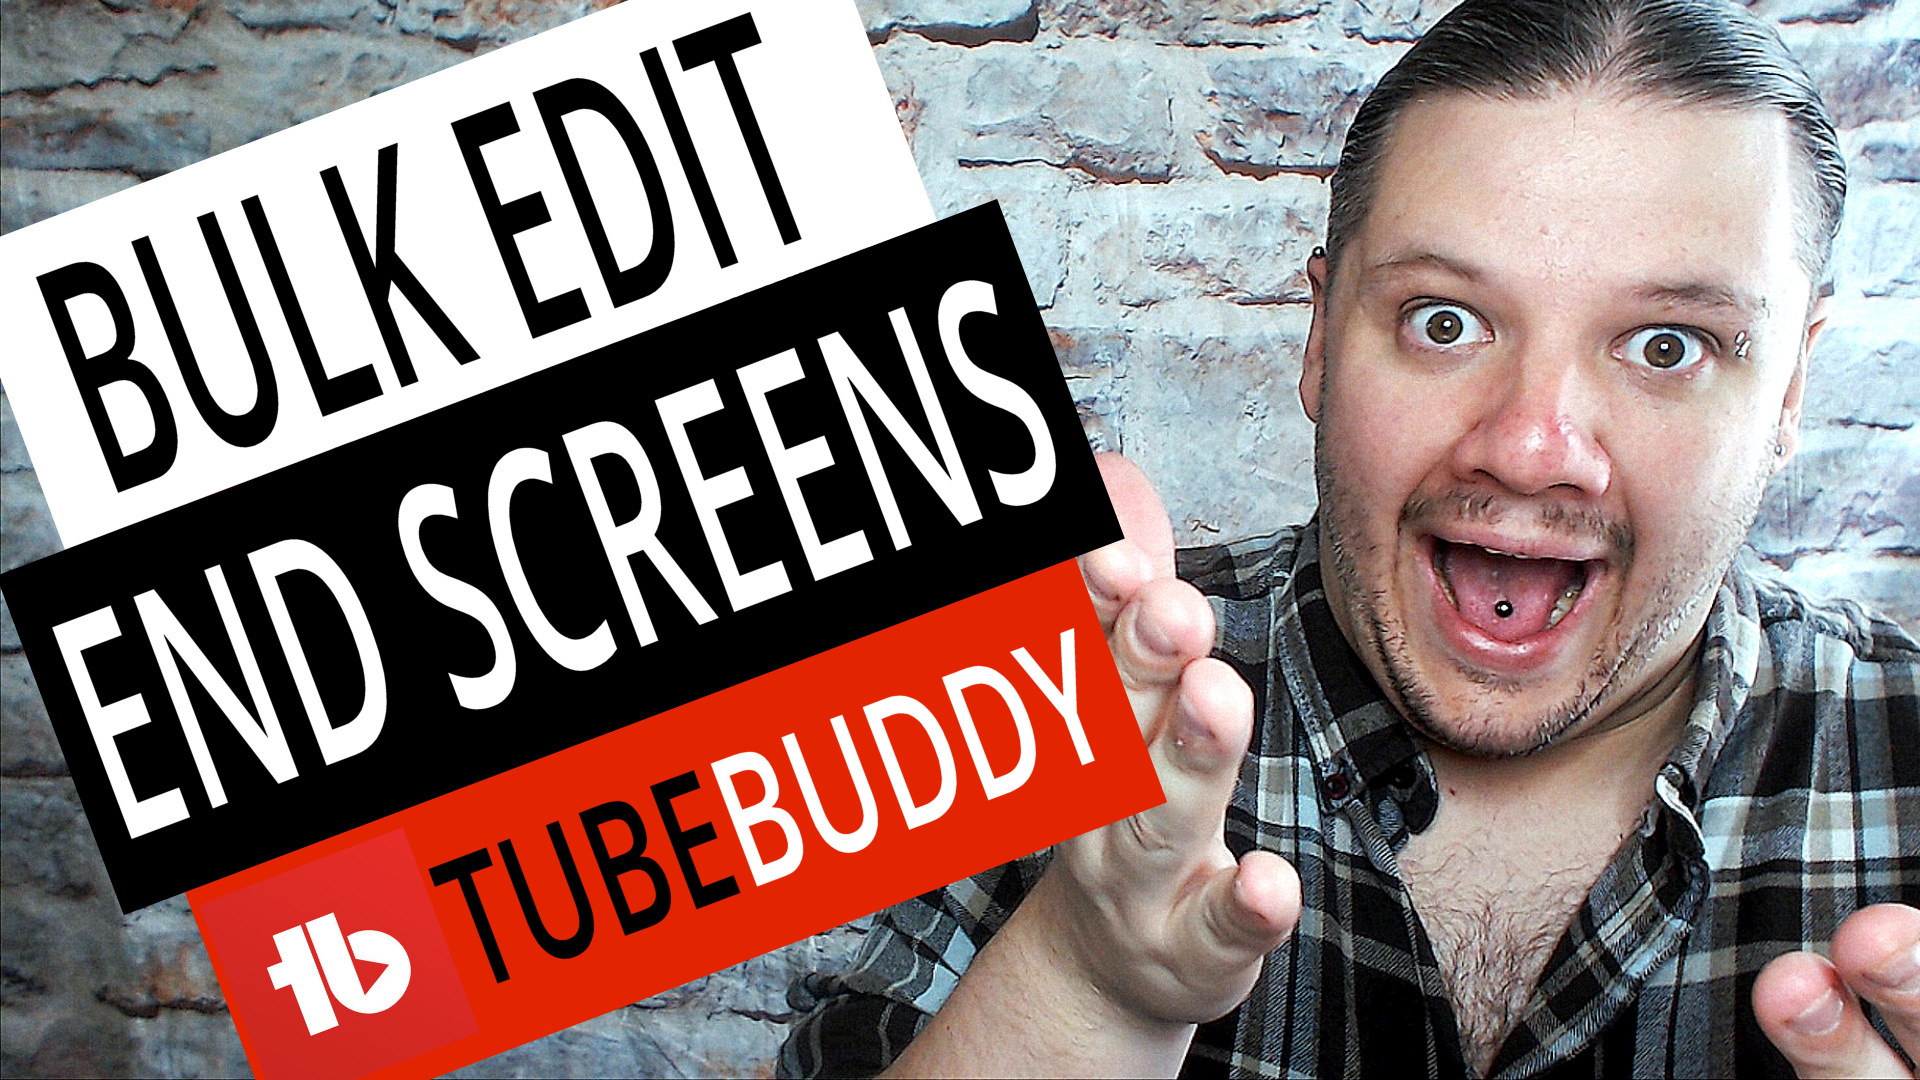 alan spicer,alanspicer,asyt,youtube end screen,end screen,end card,bulk add end screens,end card tutorial,bulk edit end screen,bulk edit,youtube bulk edit,bulk edit end cards,bulk edit youtube videos,how to bulk change youtube end screens,how to bulk edit end screens on youtube,how to bulk edit end cards on youtube,how to bulk edit end cards with tubebuddy,bulk edit with tubebuddy,tubebuddy,bulk edit tubebuddy,tubebuddy tutorial,bulk change end screens,bulk